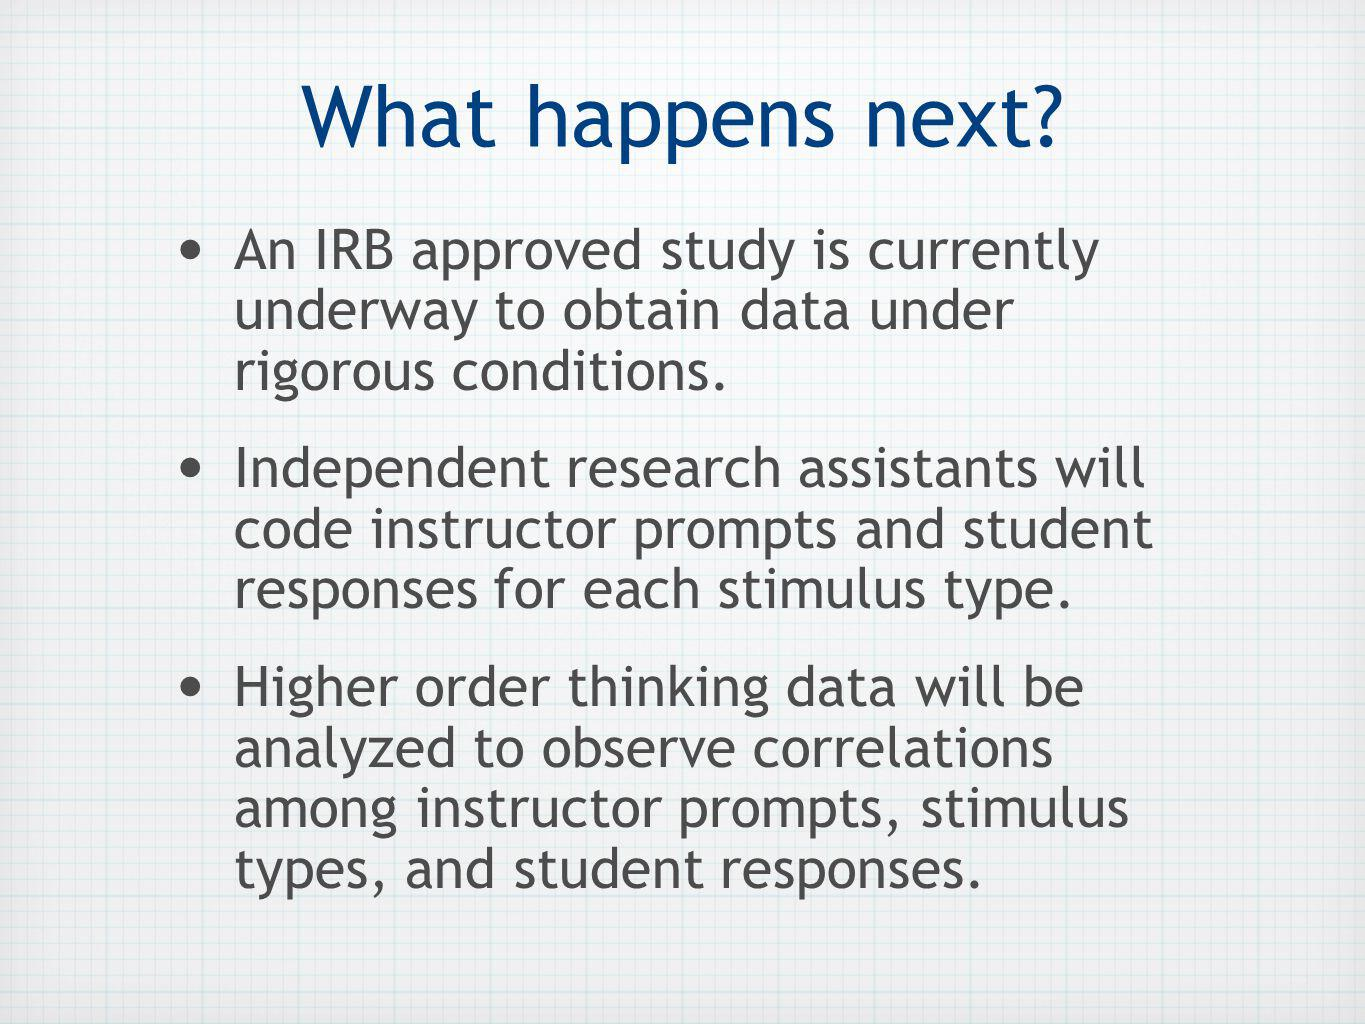 What happens next? An IRB approved study is currently underway to obtain data under rigorous conditions. Independent research assistants will code ins